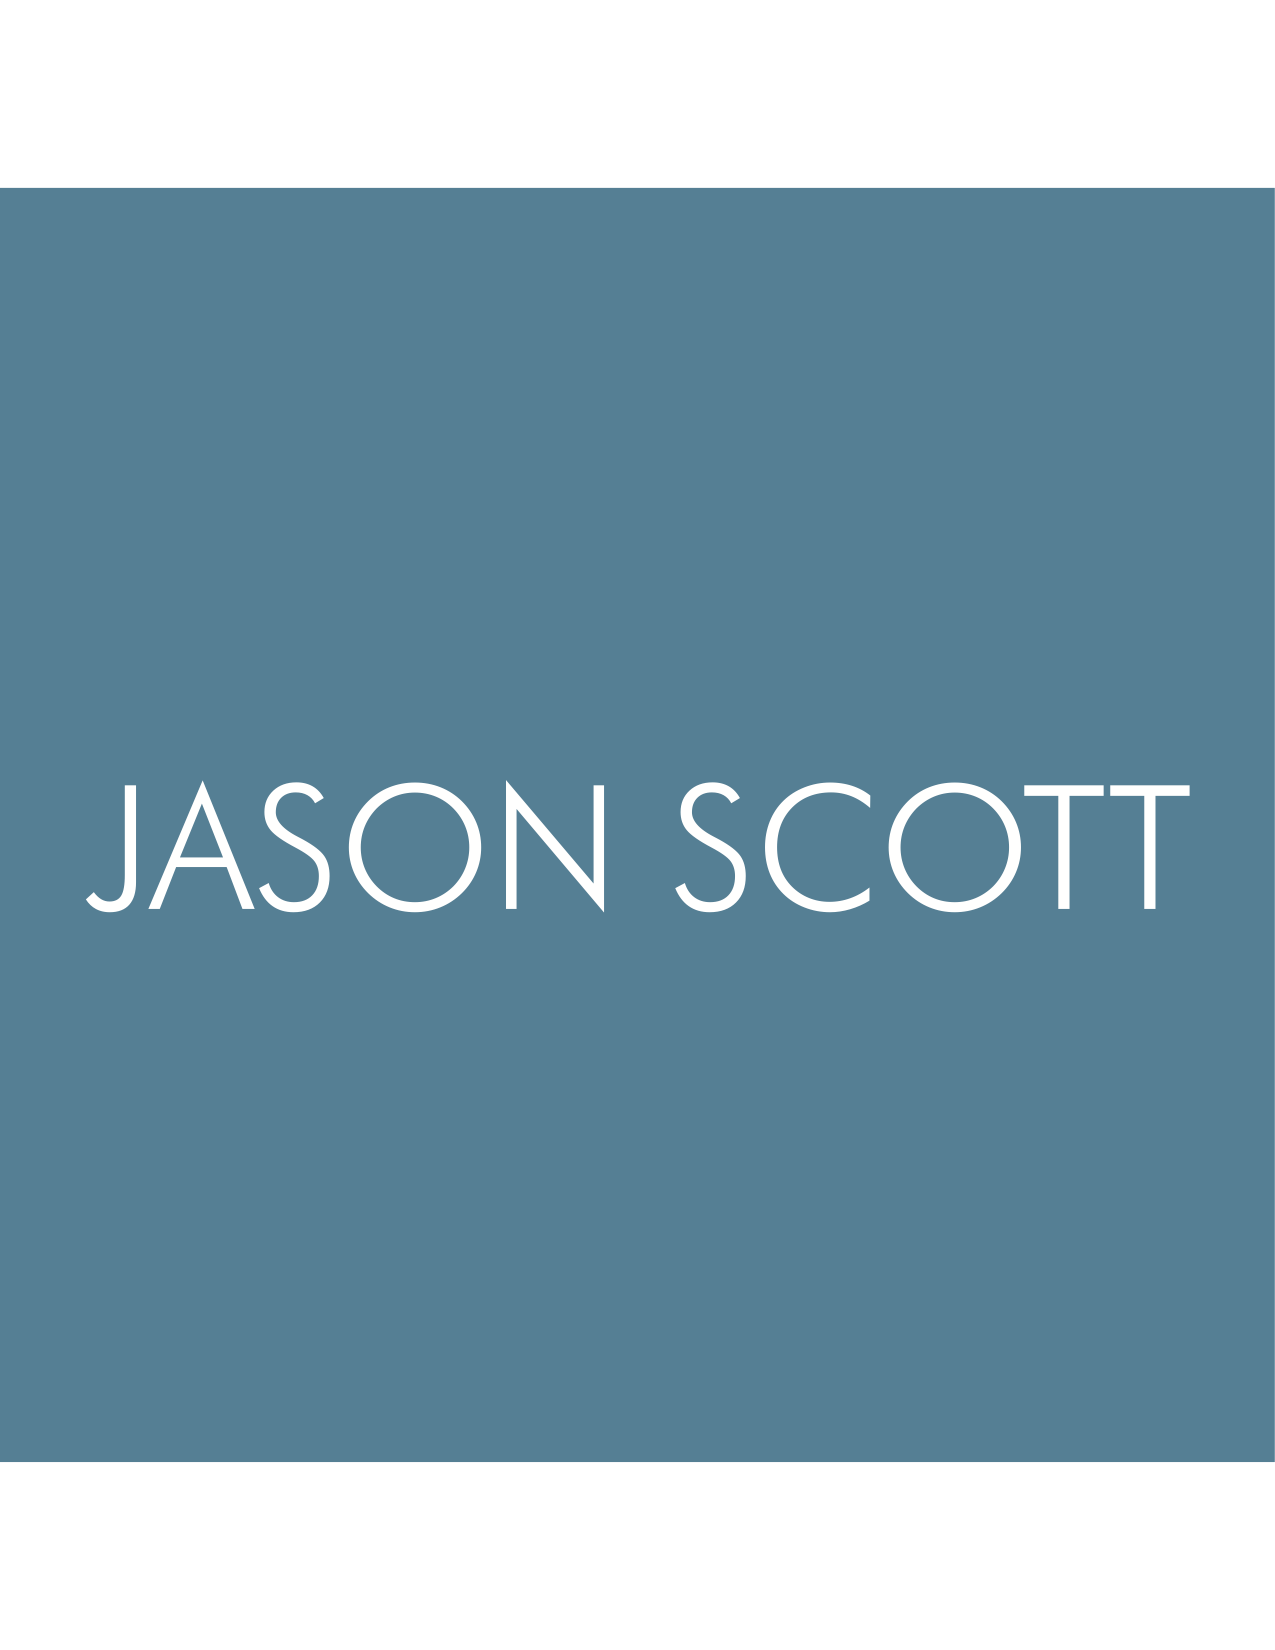 Jason Scott png